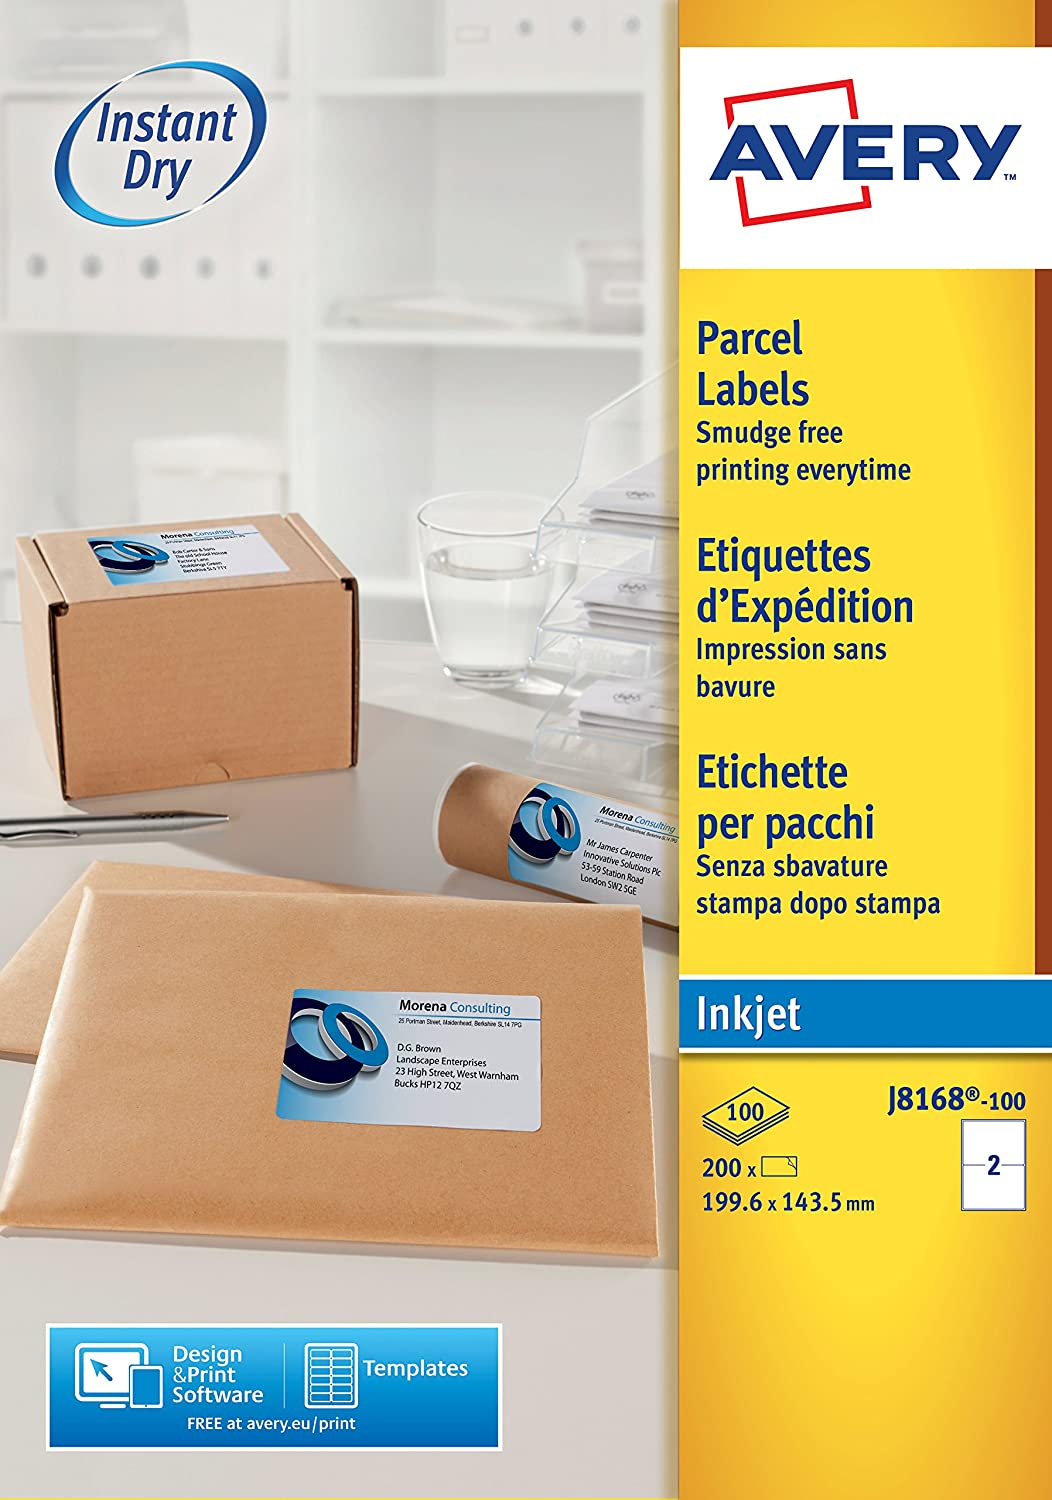 avery j8168 100 parcel shipping labels self adhesive 2 labels